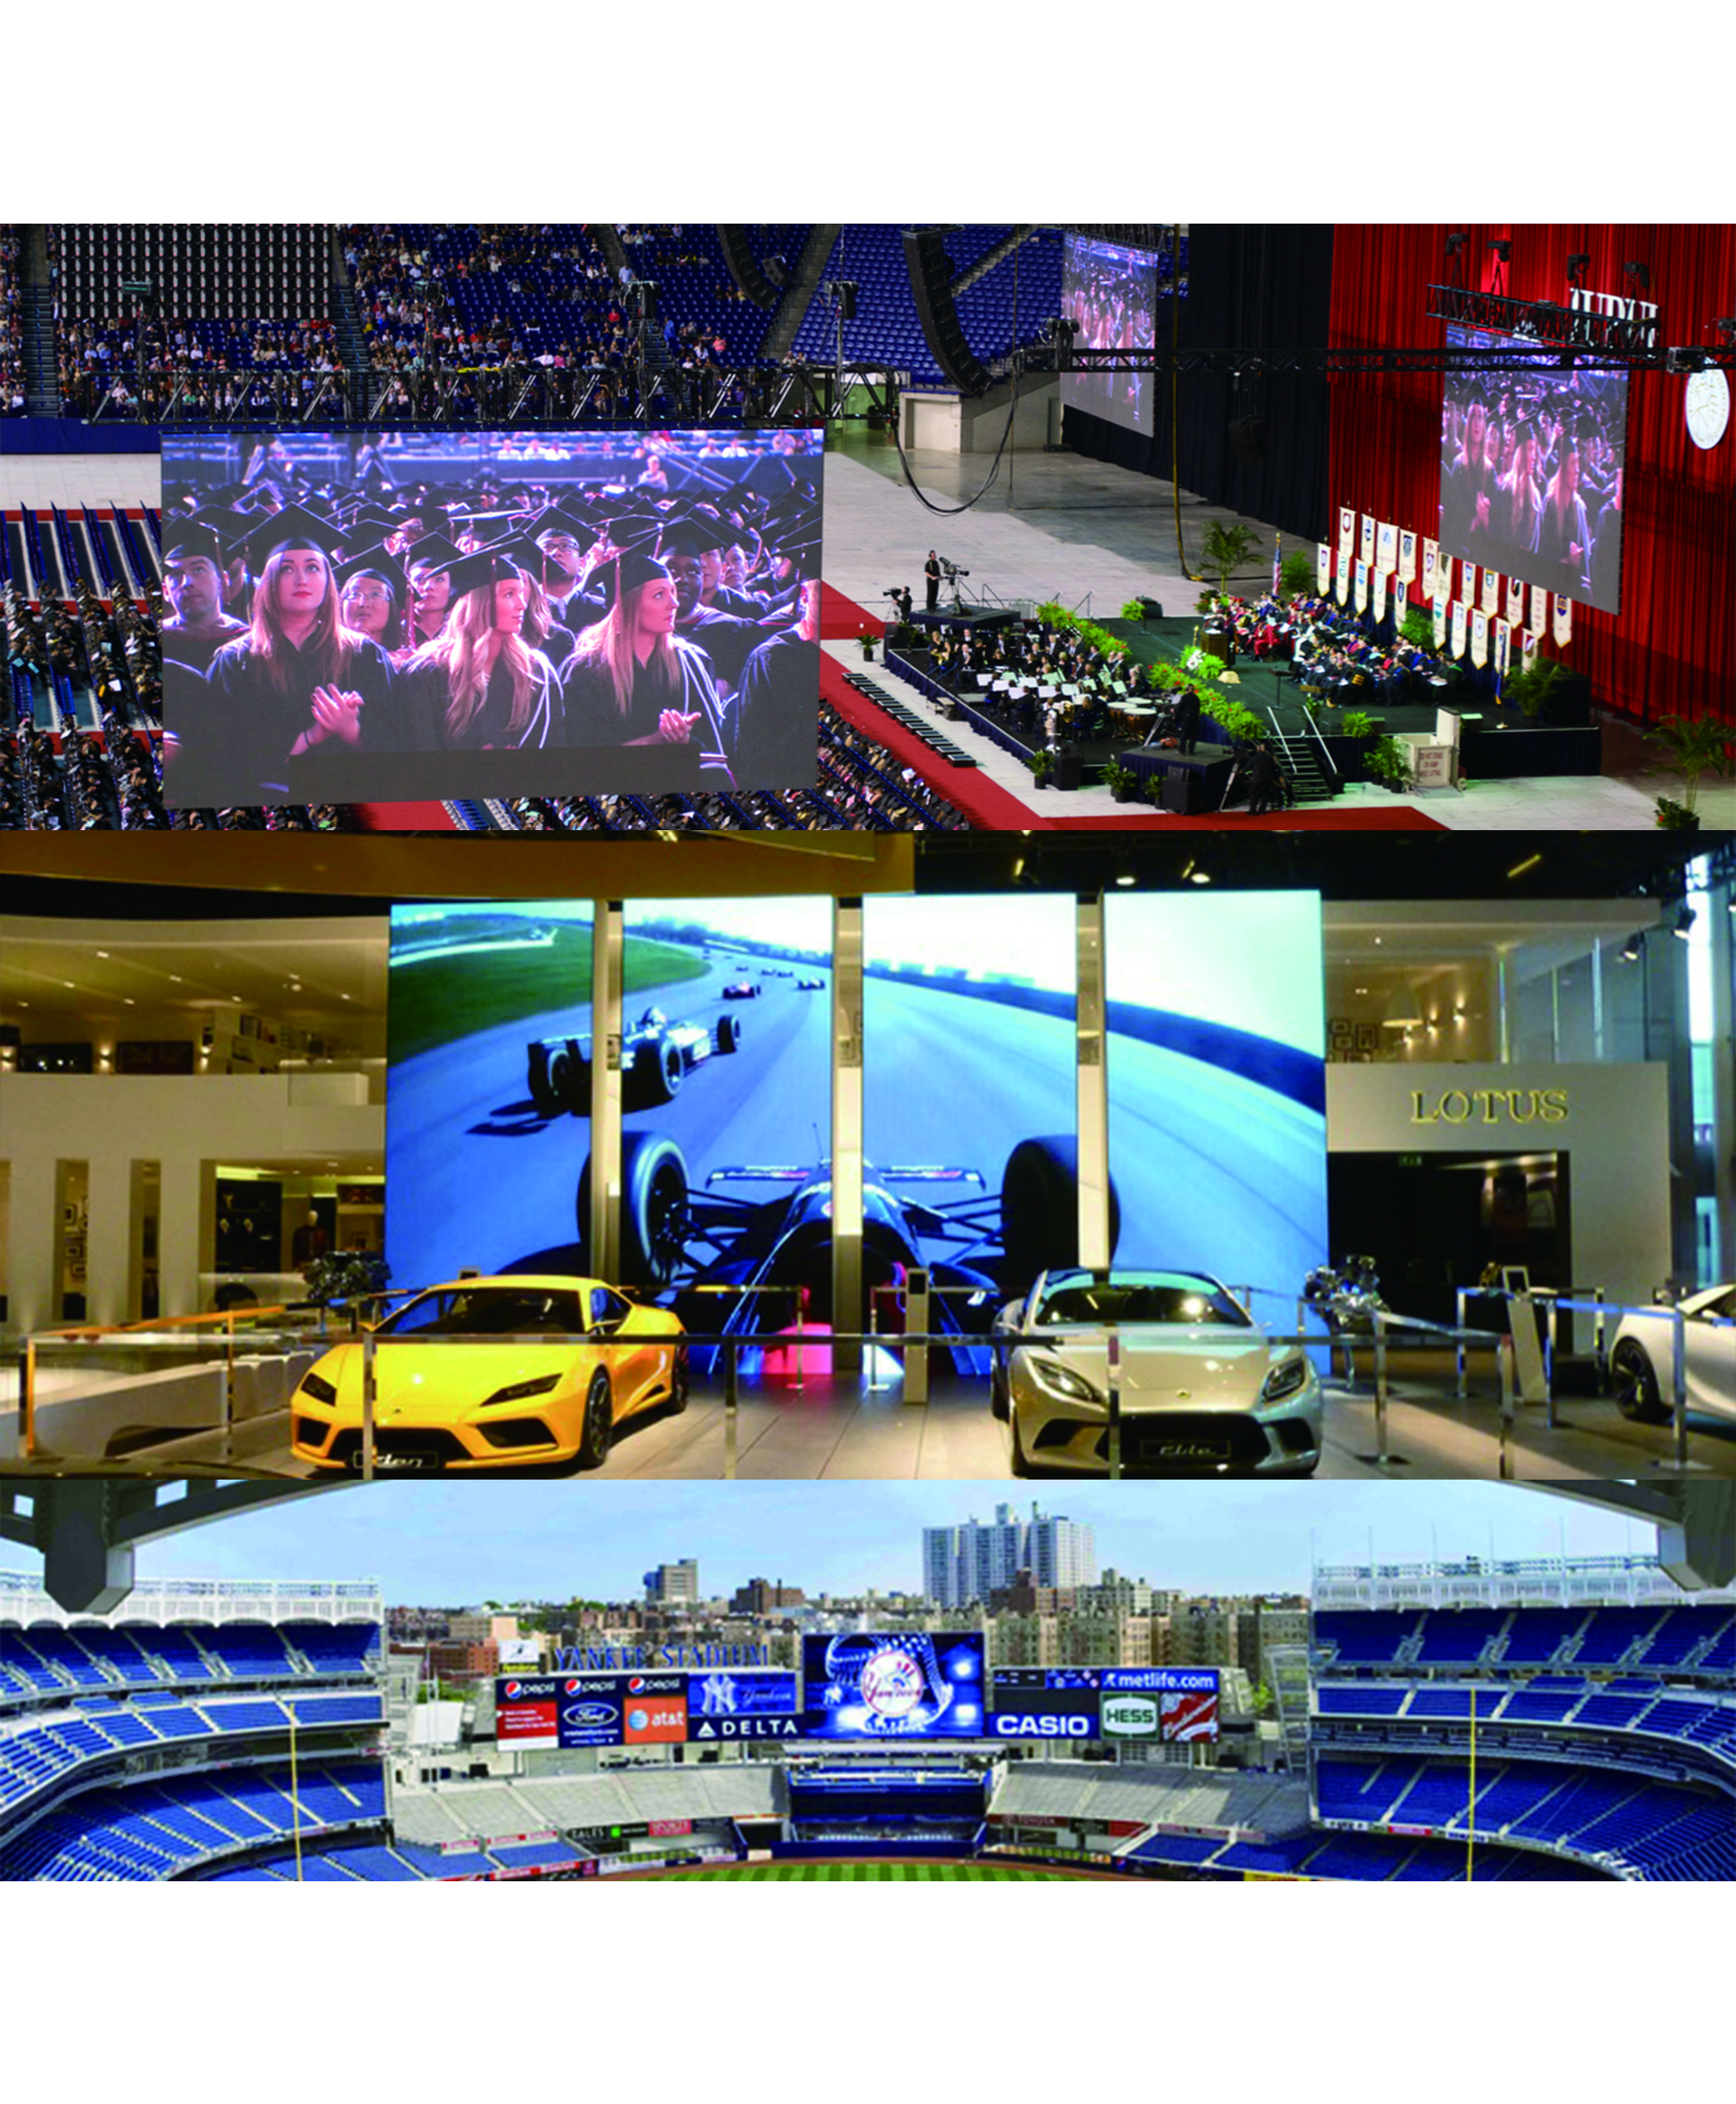 Outdoor P4.81 rental led screen display